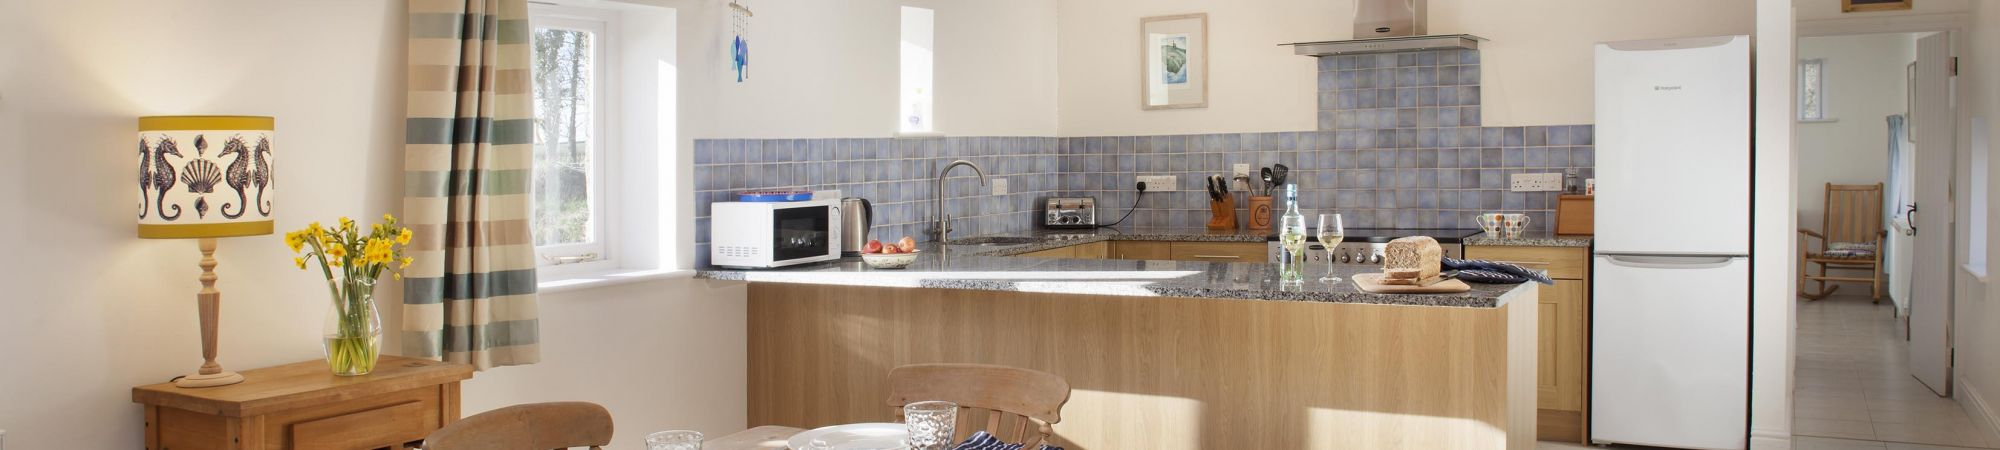 Meadow Barn - Porthleven Holiday Cottages